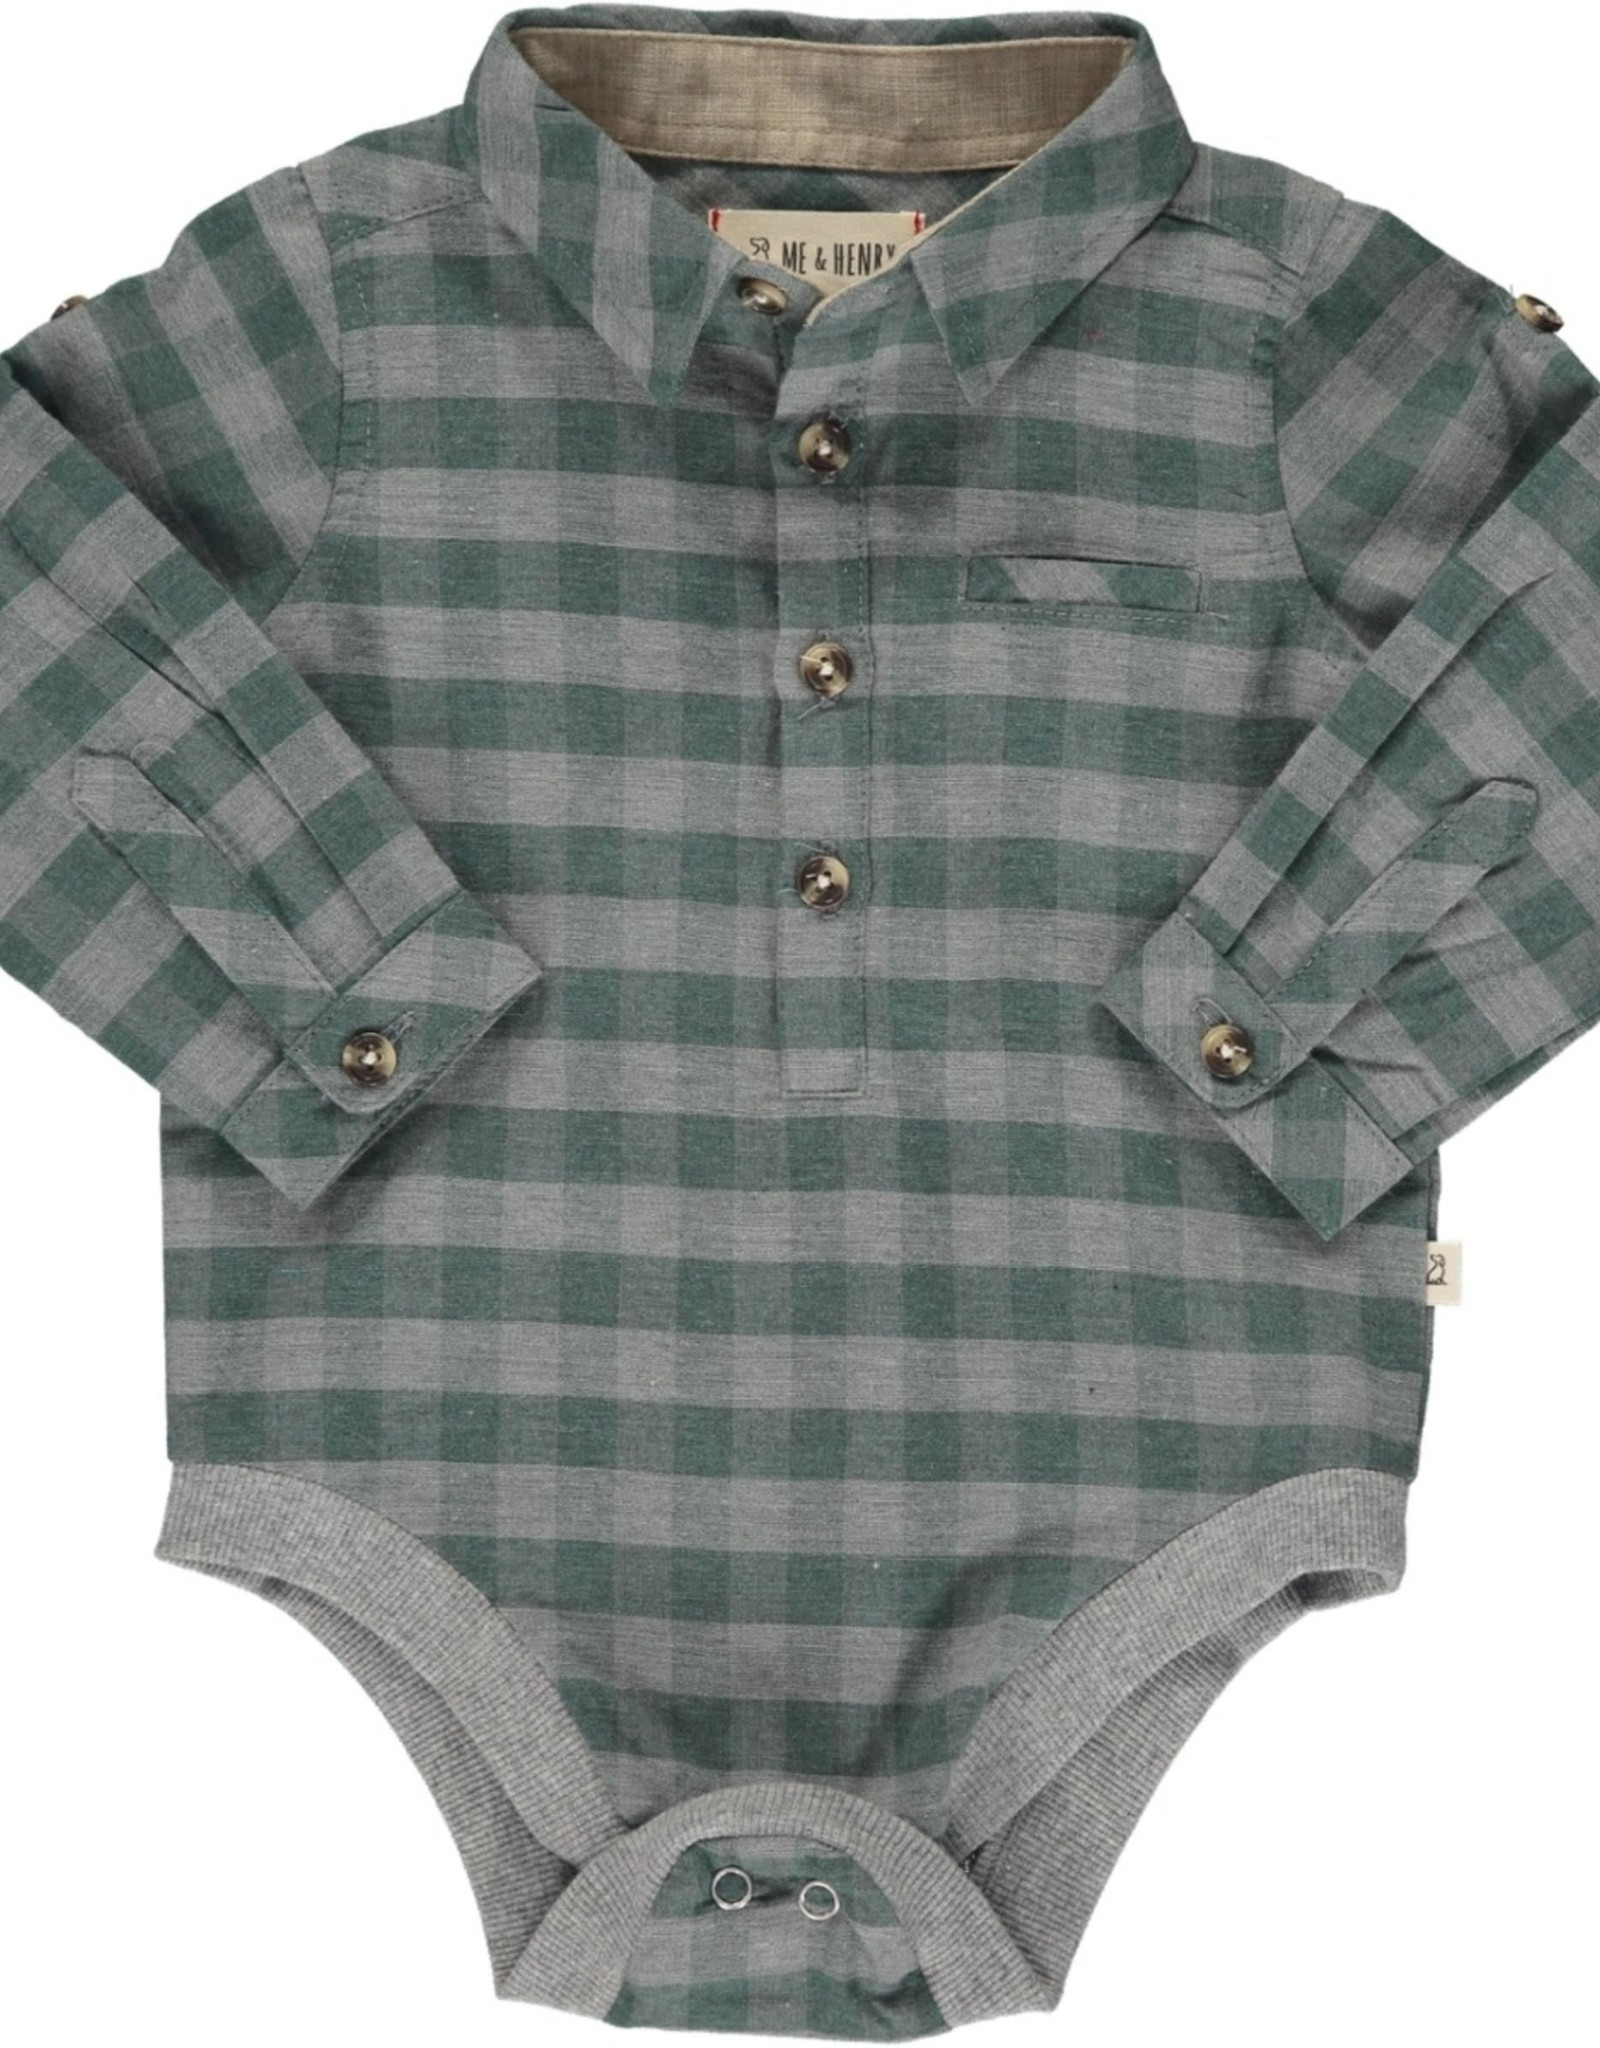 Me & Henry l/s button down onesie- green/grey plaid